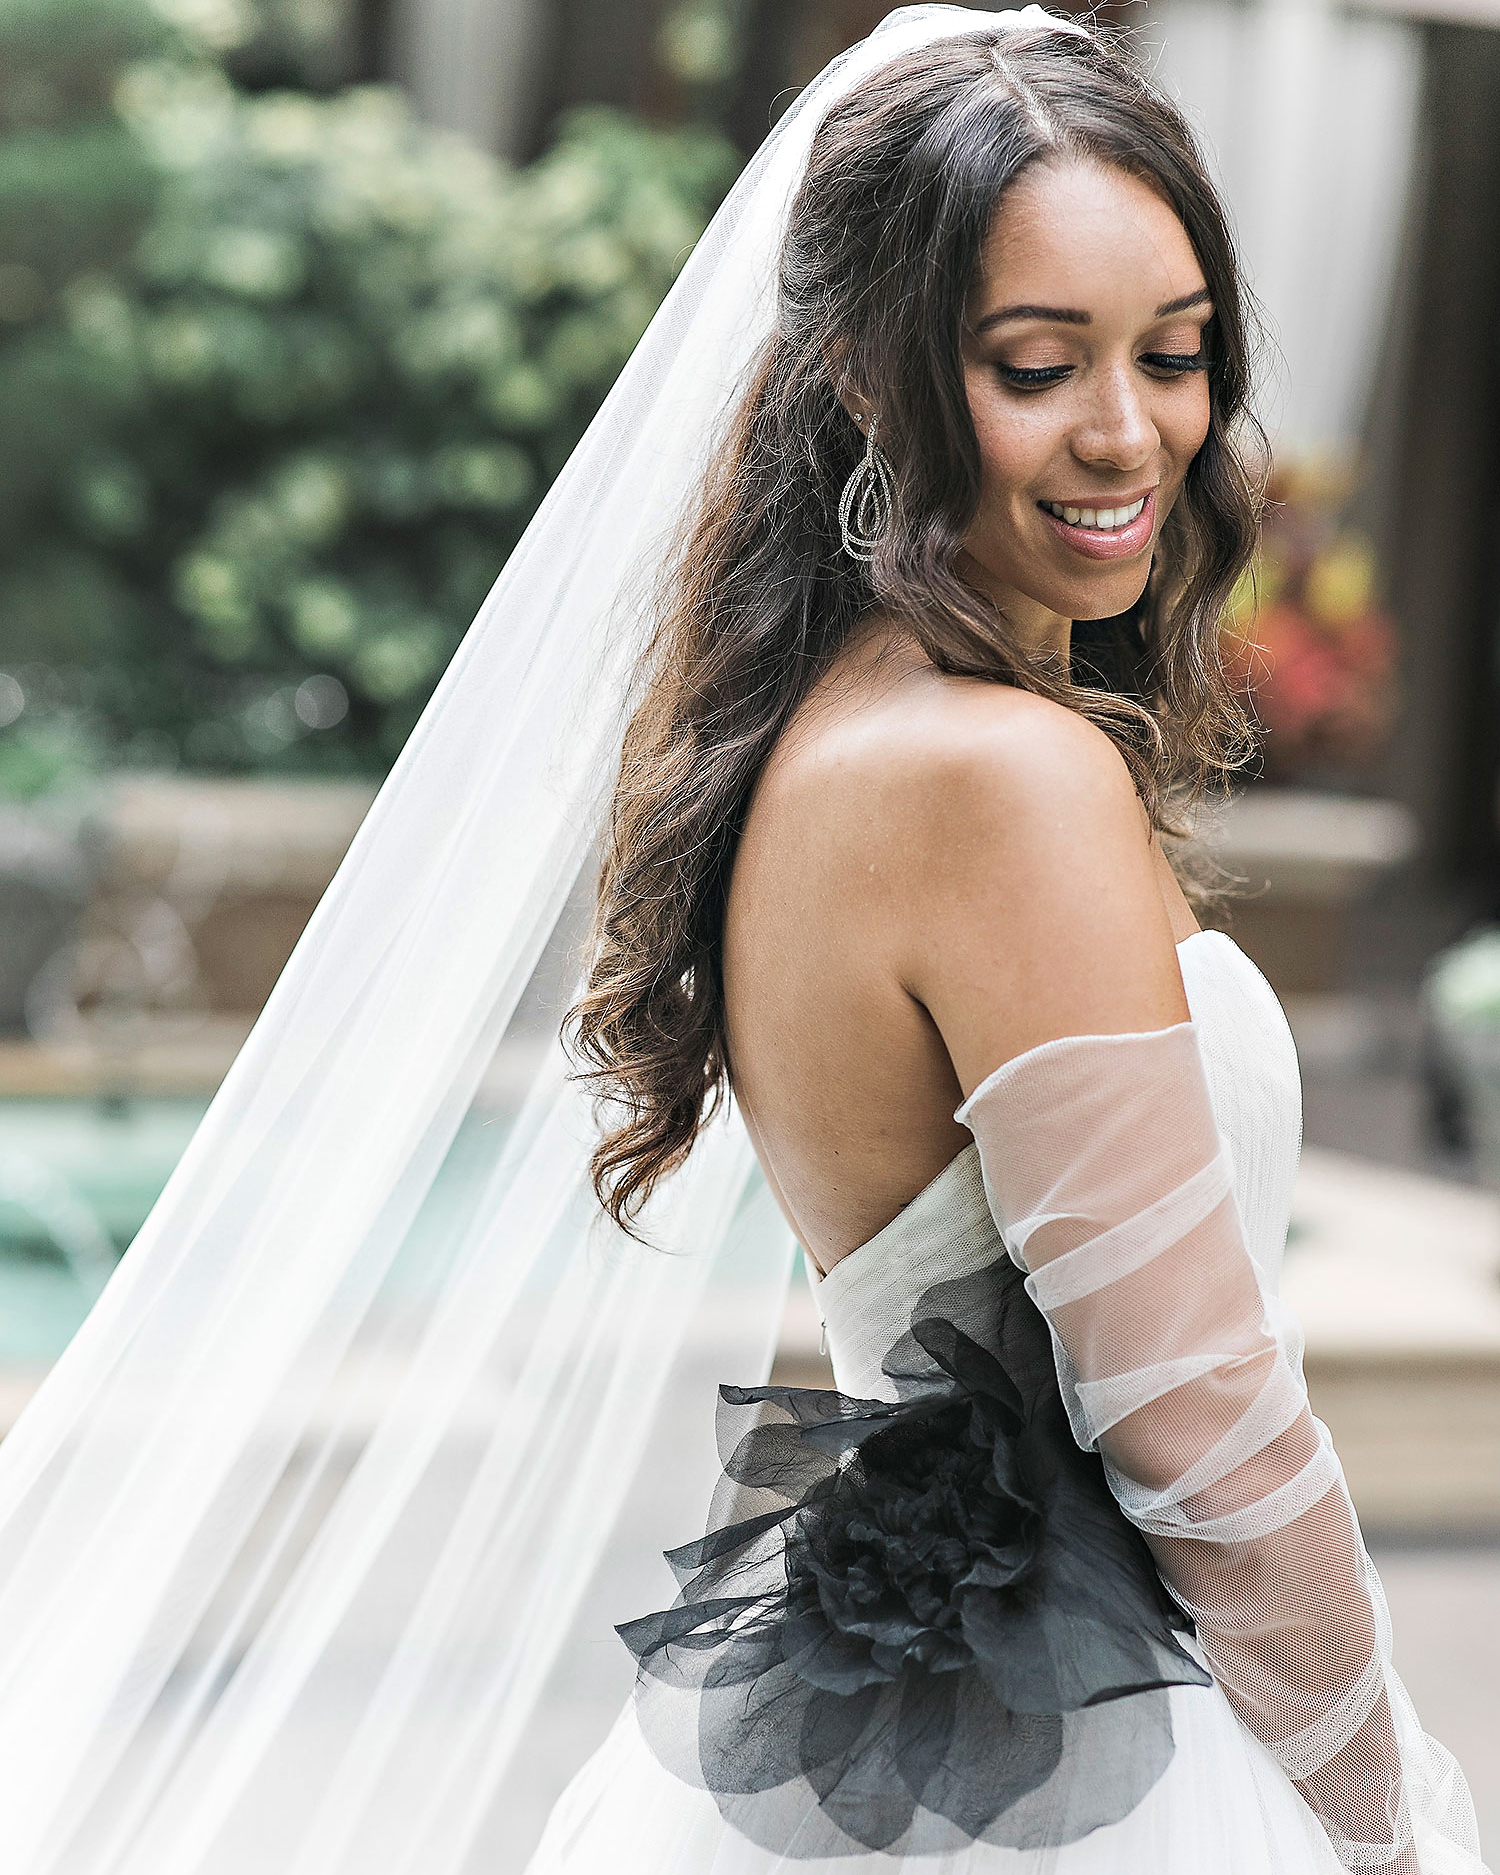 danielle kevin wedding bride dress and veil